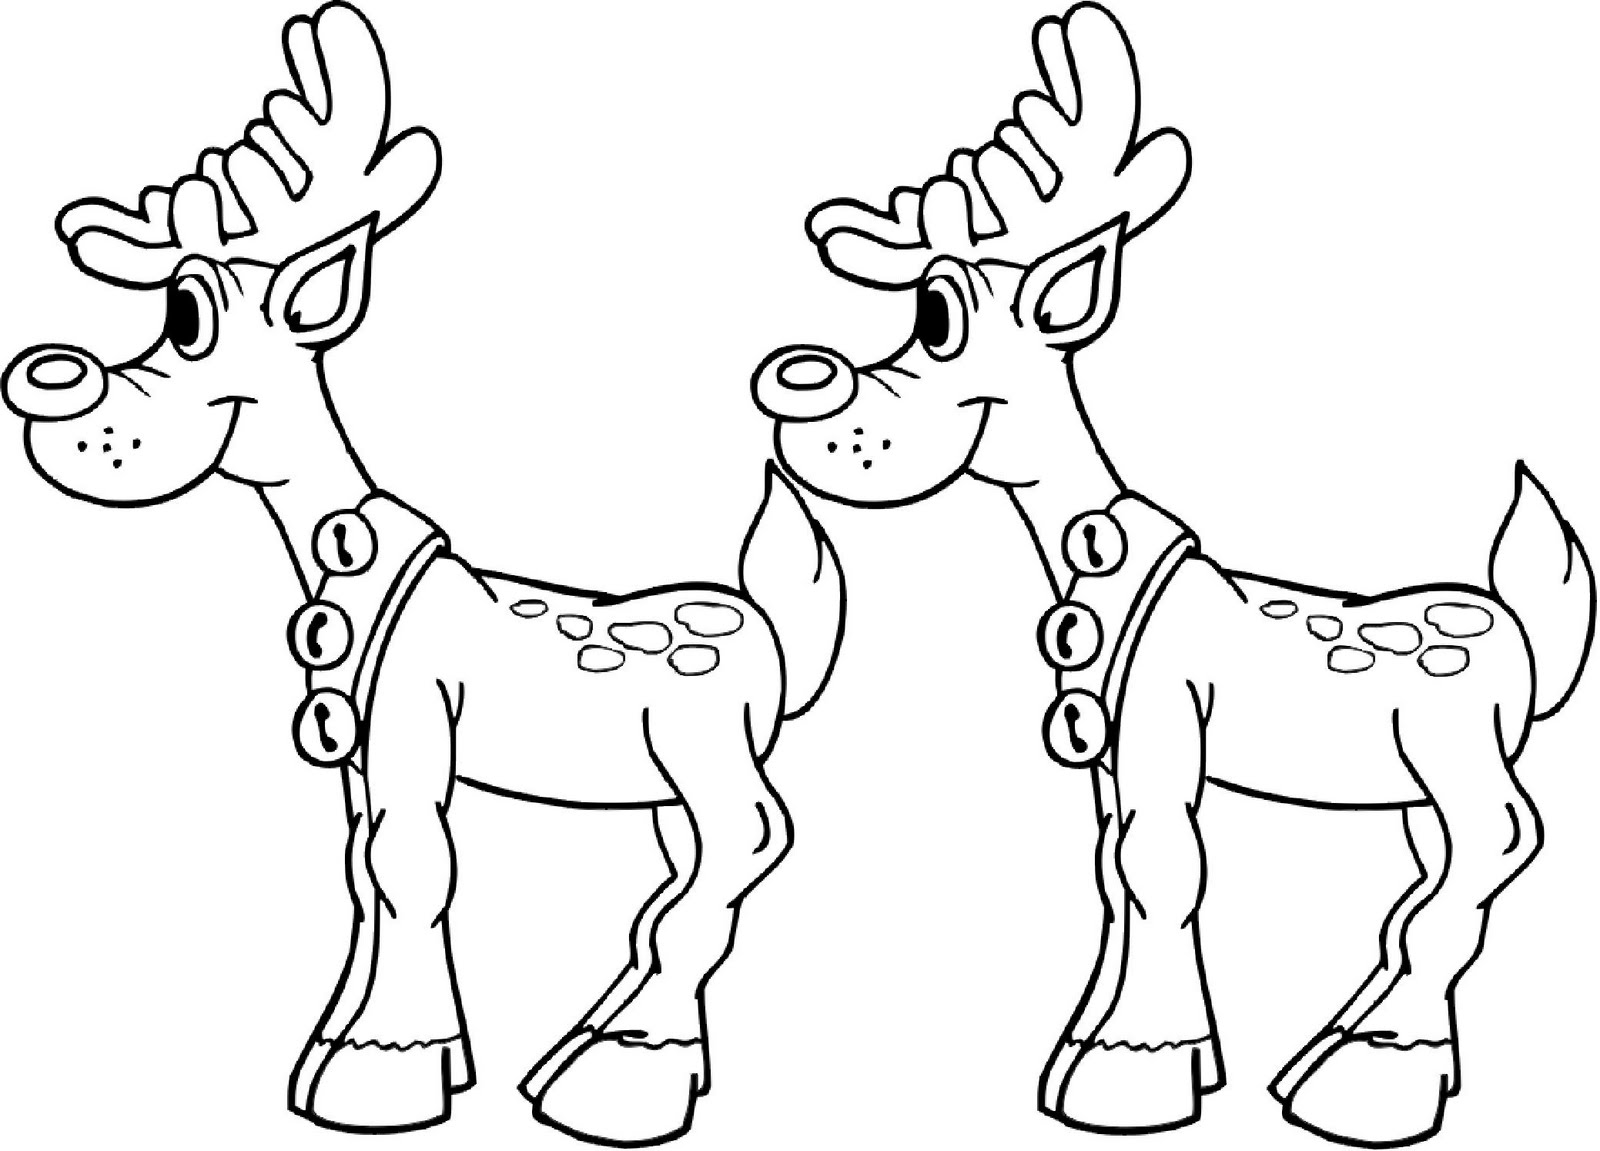 reindeer cut out template - search results for reindeer face template calendar 2015